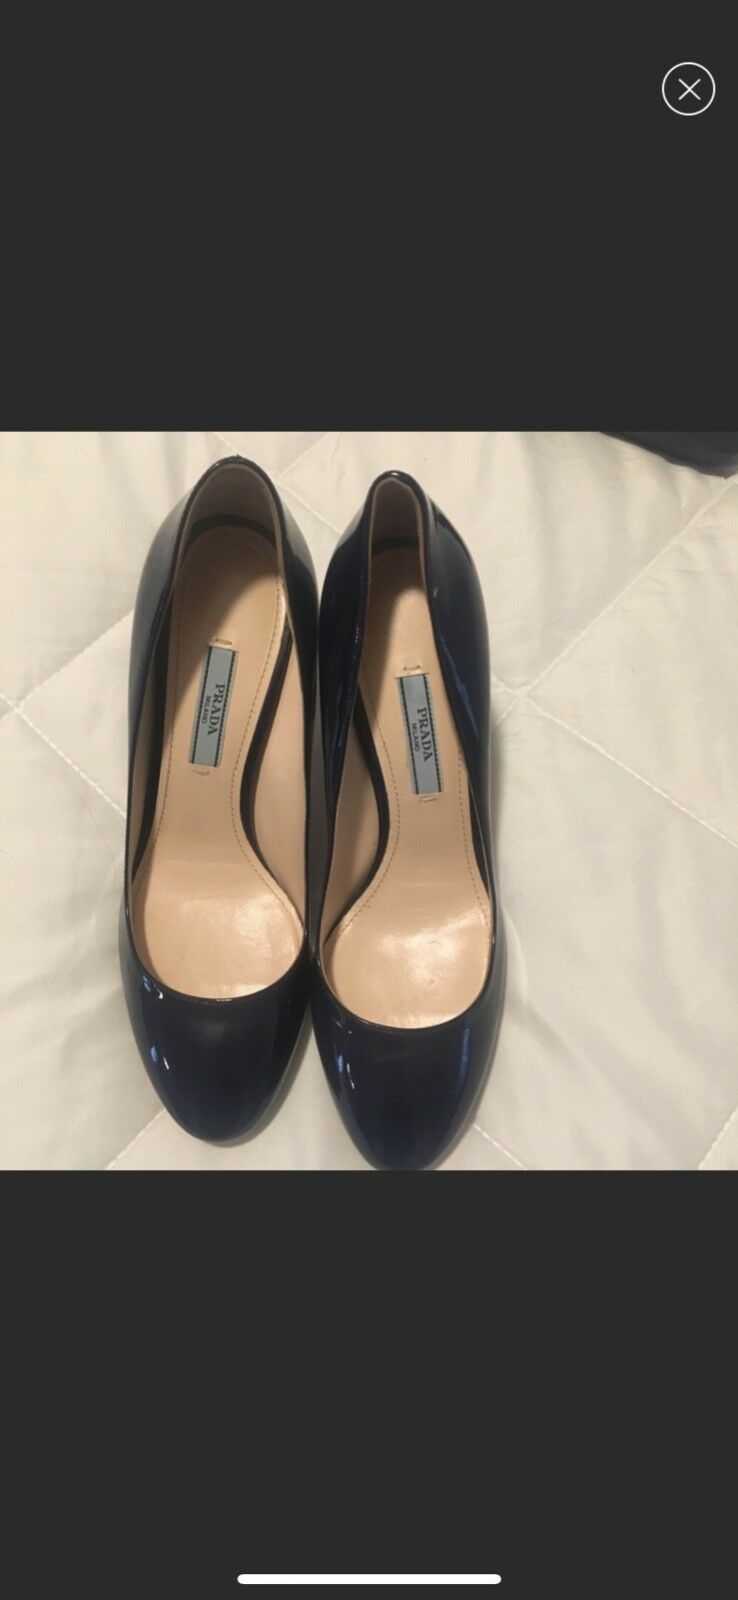 Prada Navy bluee Patent Patent Patent Heels - great condition 635a44